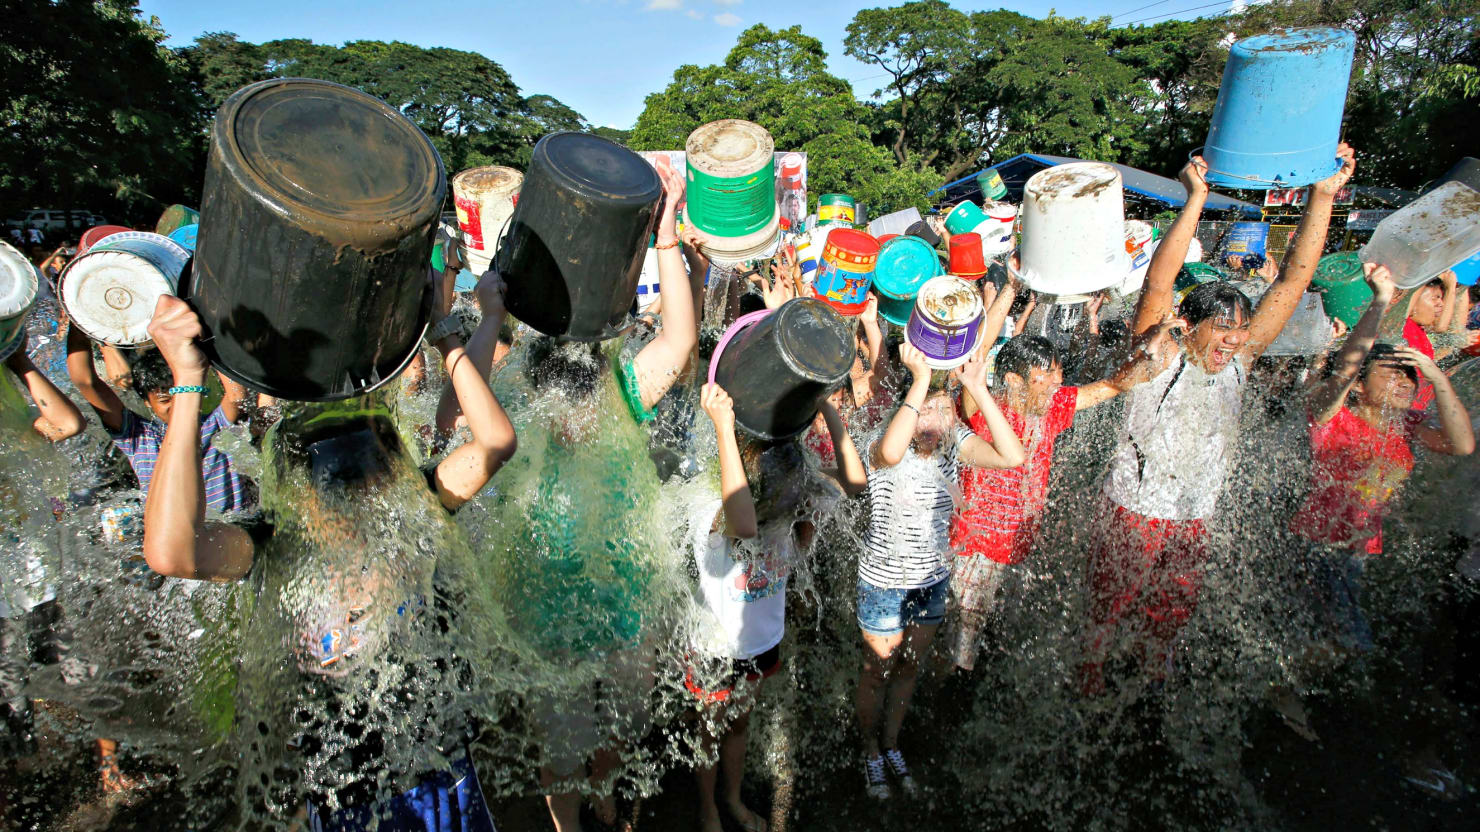 ice bucket challenge leads to als gene discovery the daily beast